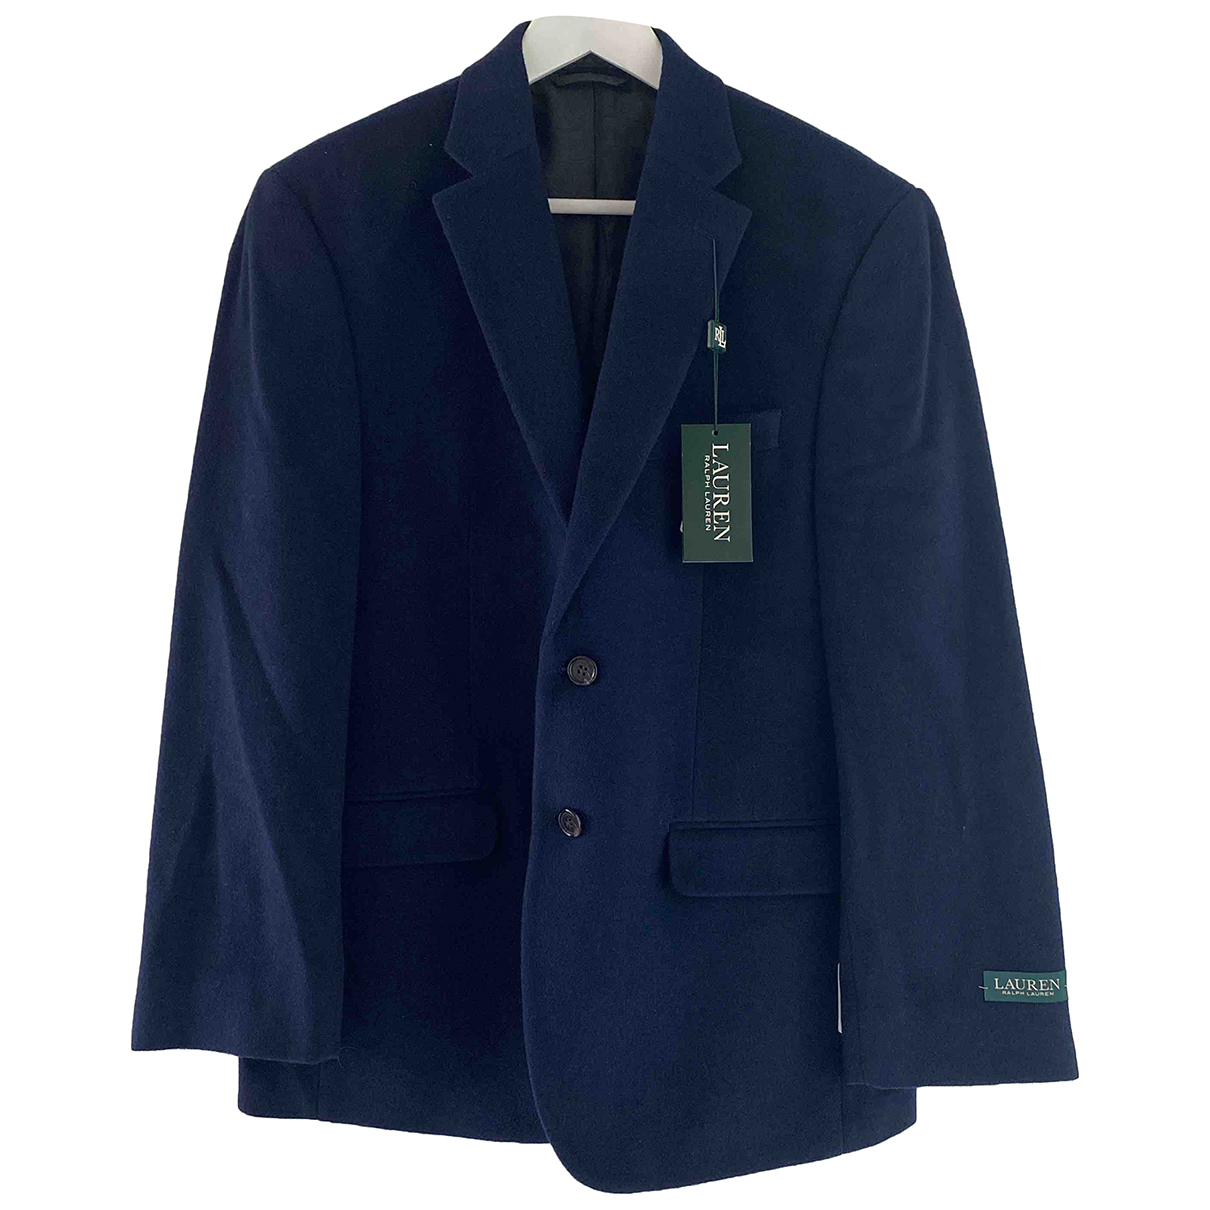 Lauren Ralph Lauren N Blue Cashmere jacket  for Men 38 UK - US